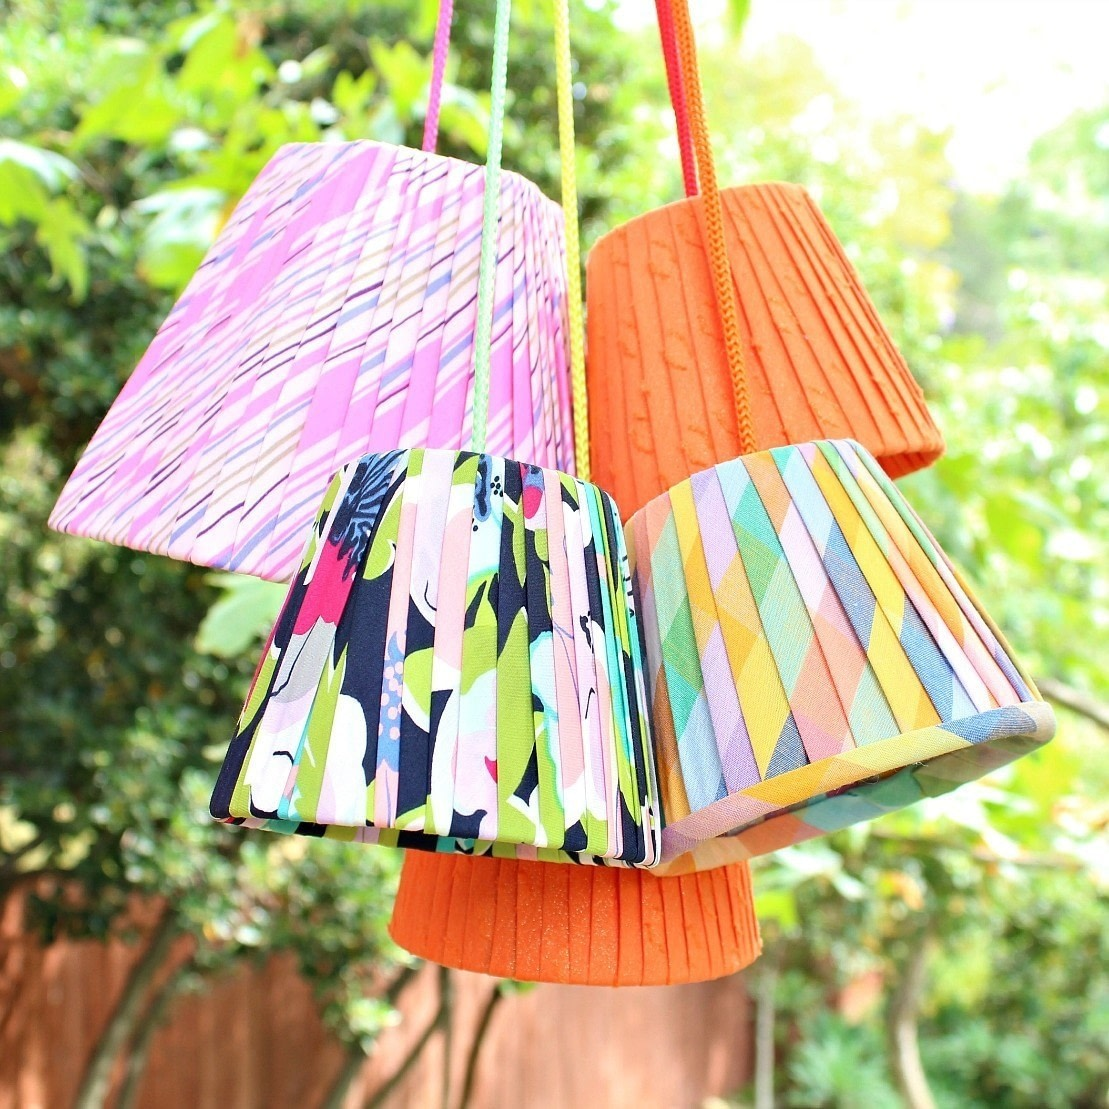 How to make lamps shades Craft tutorials and inspiration